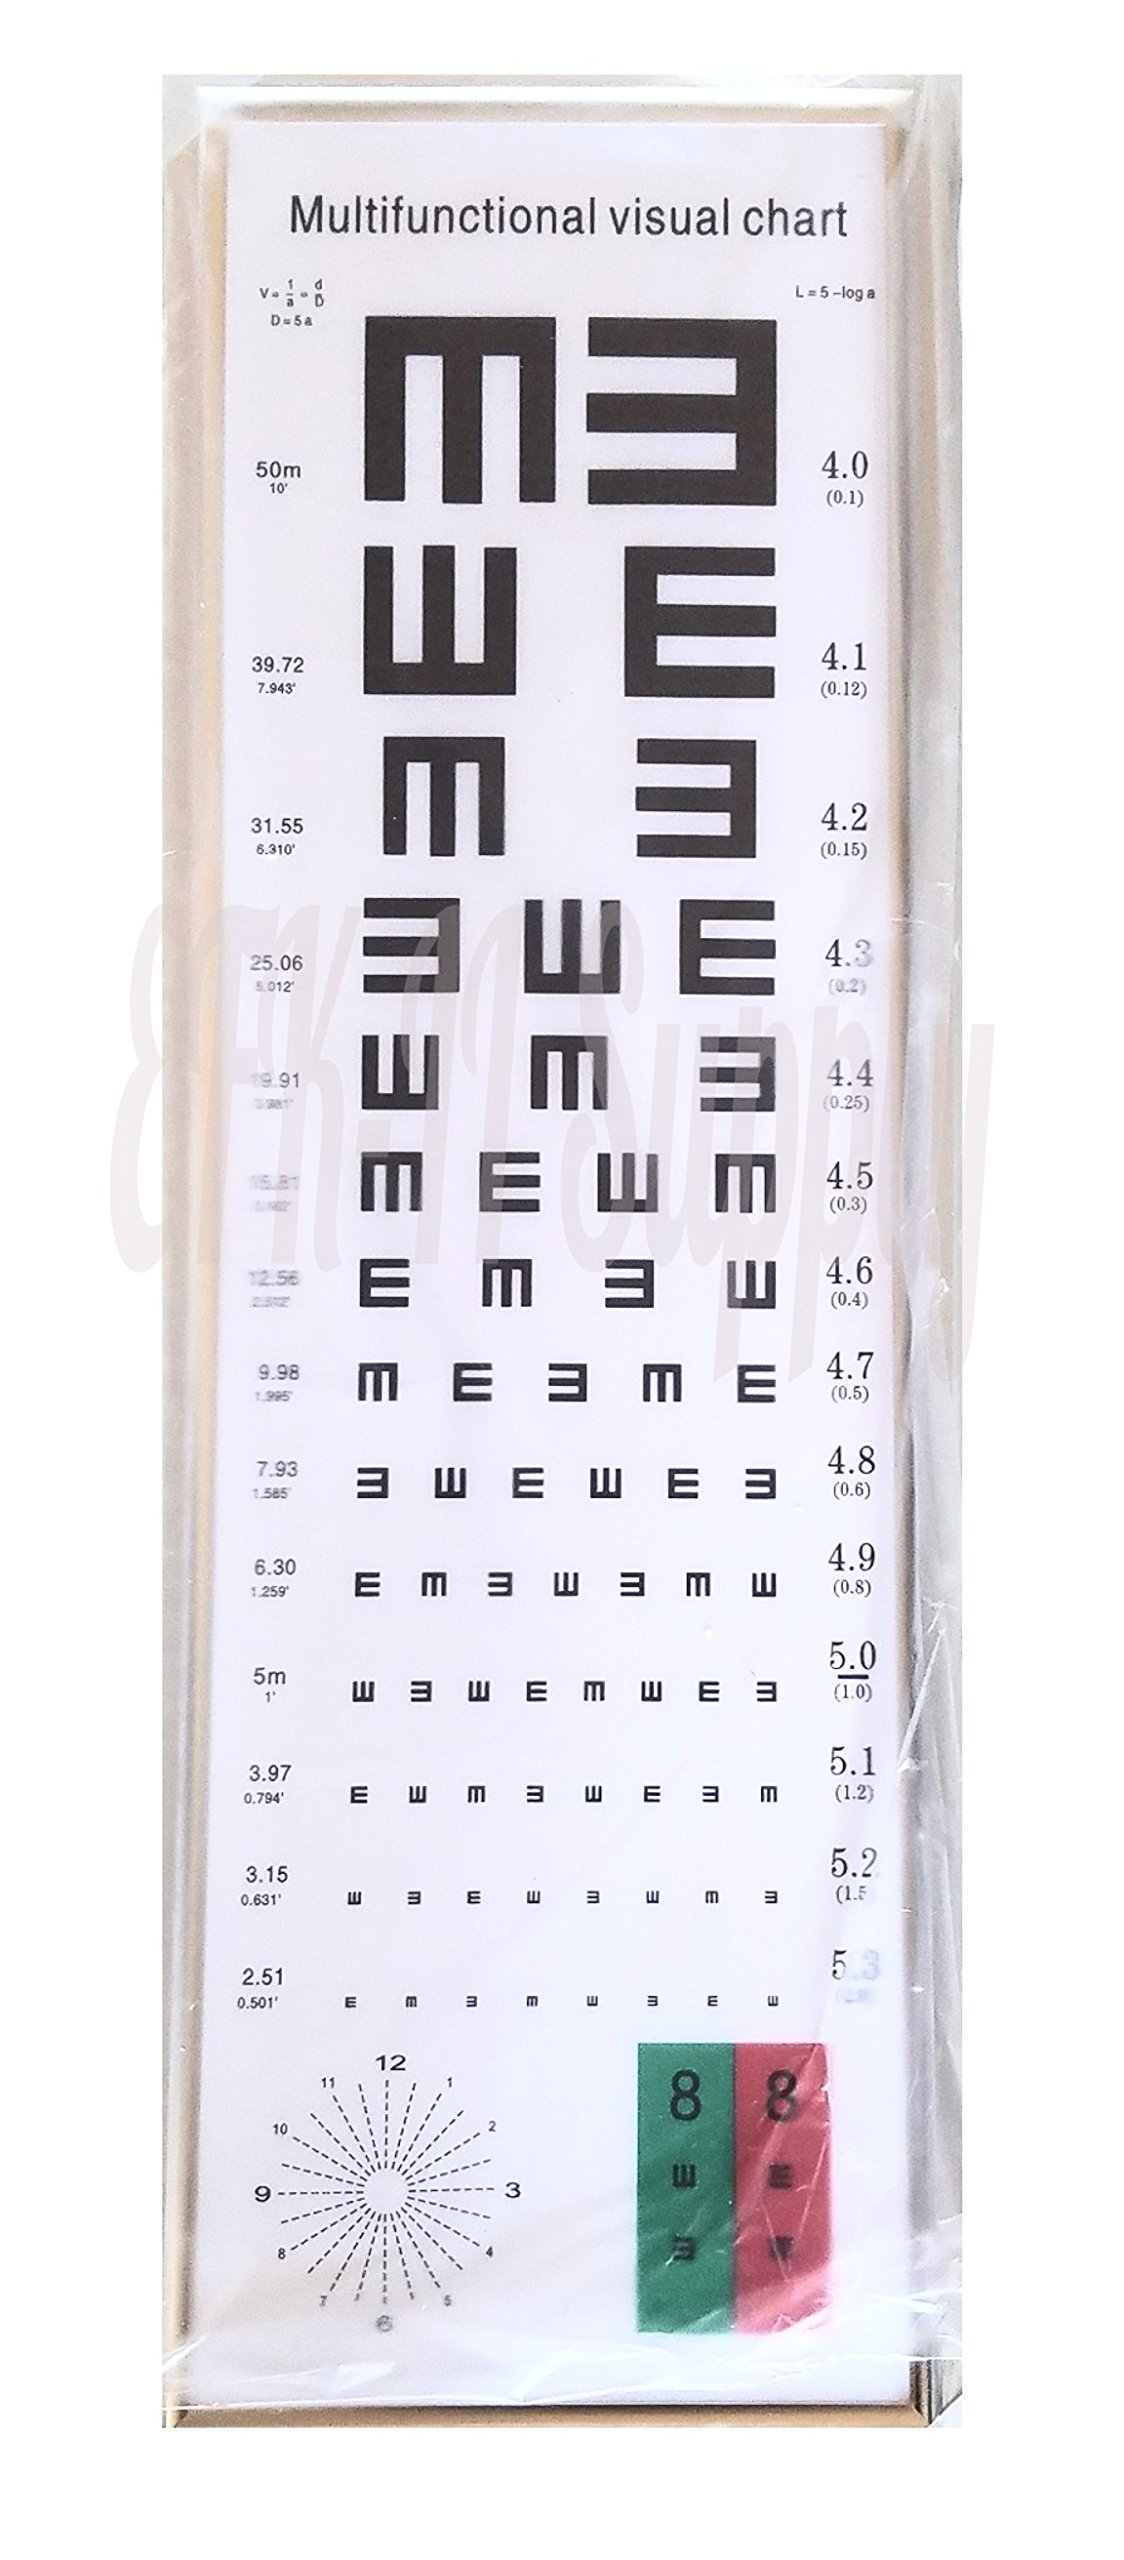 EFK-II Supply 16 Feet Standard Logarithmic Visual Acuity Chart LED Light Box Astigmatism Chart